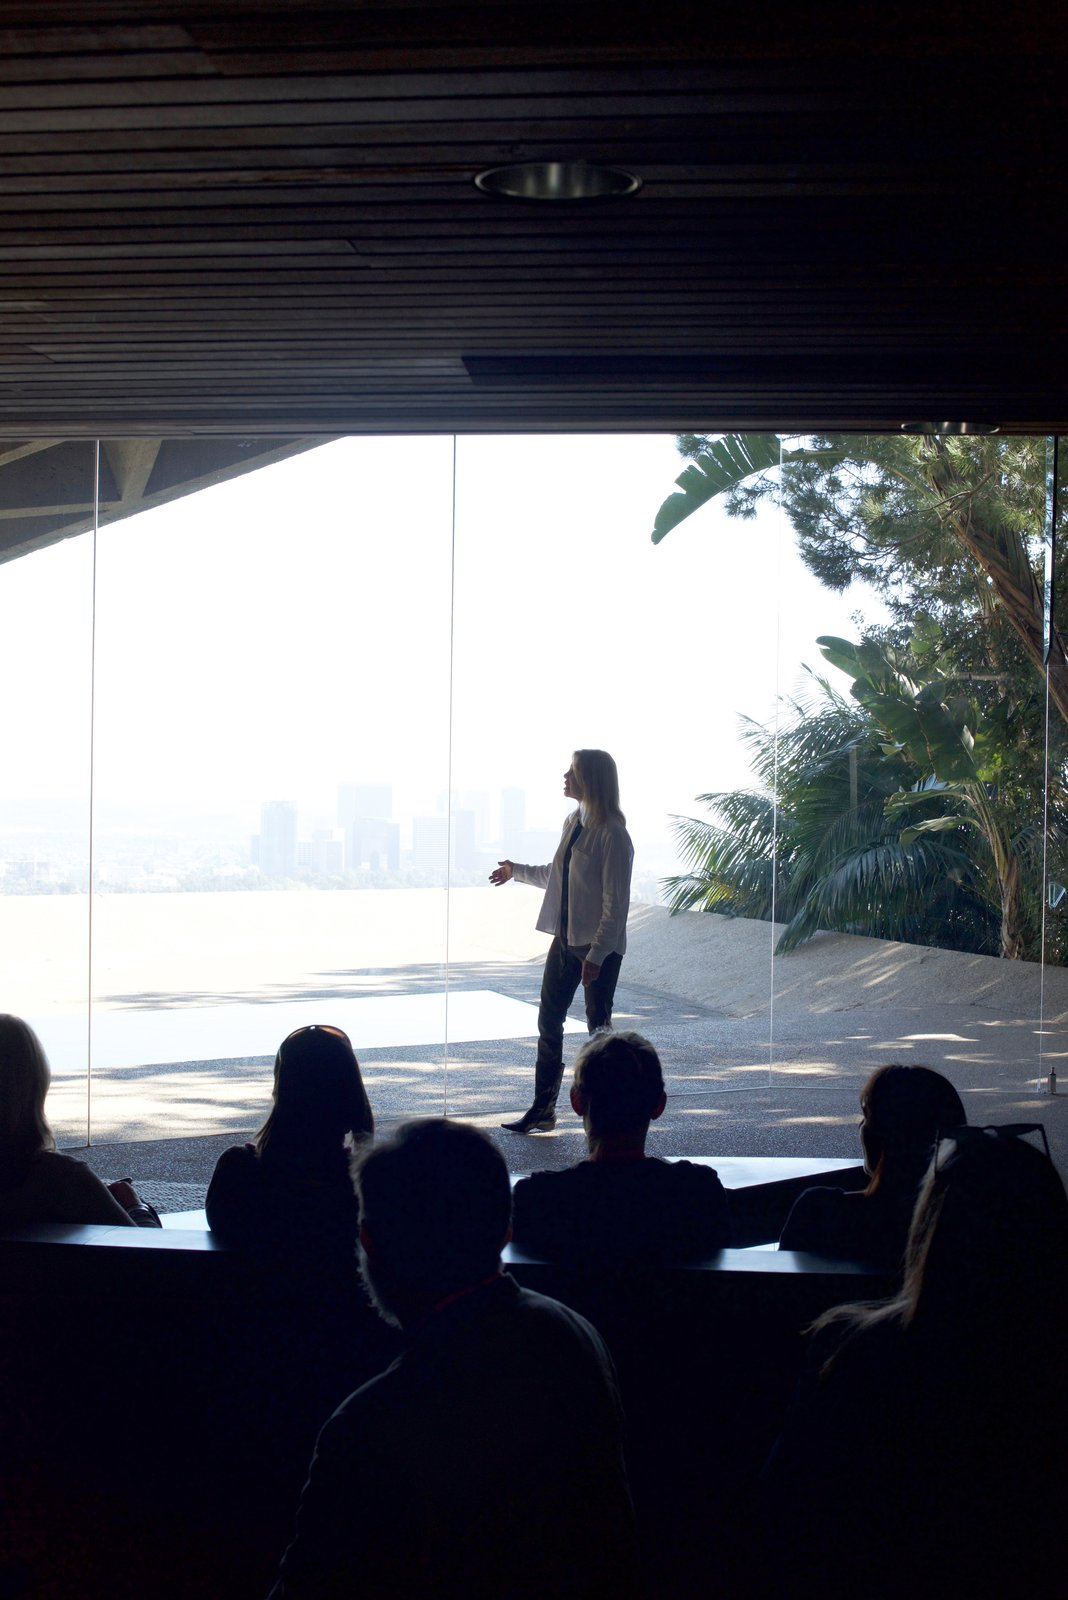 James Goldstein's associate shared with the touring group the story of the house while standing in front of the pool.  Behind the Scenes at John Lautner's Sheats-Goldstein Residence